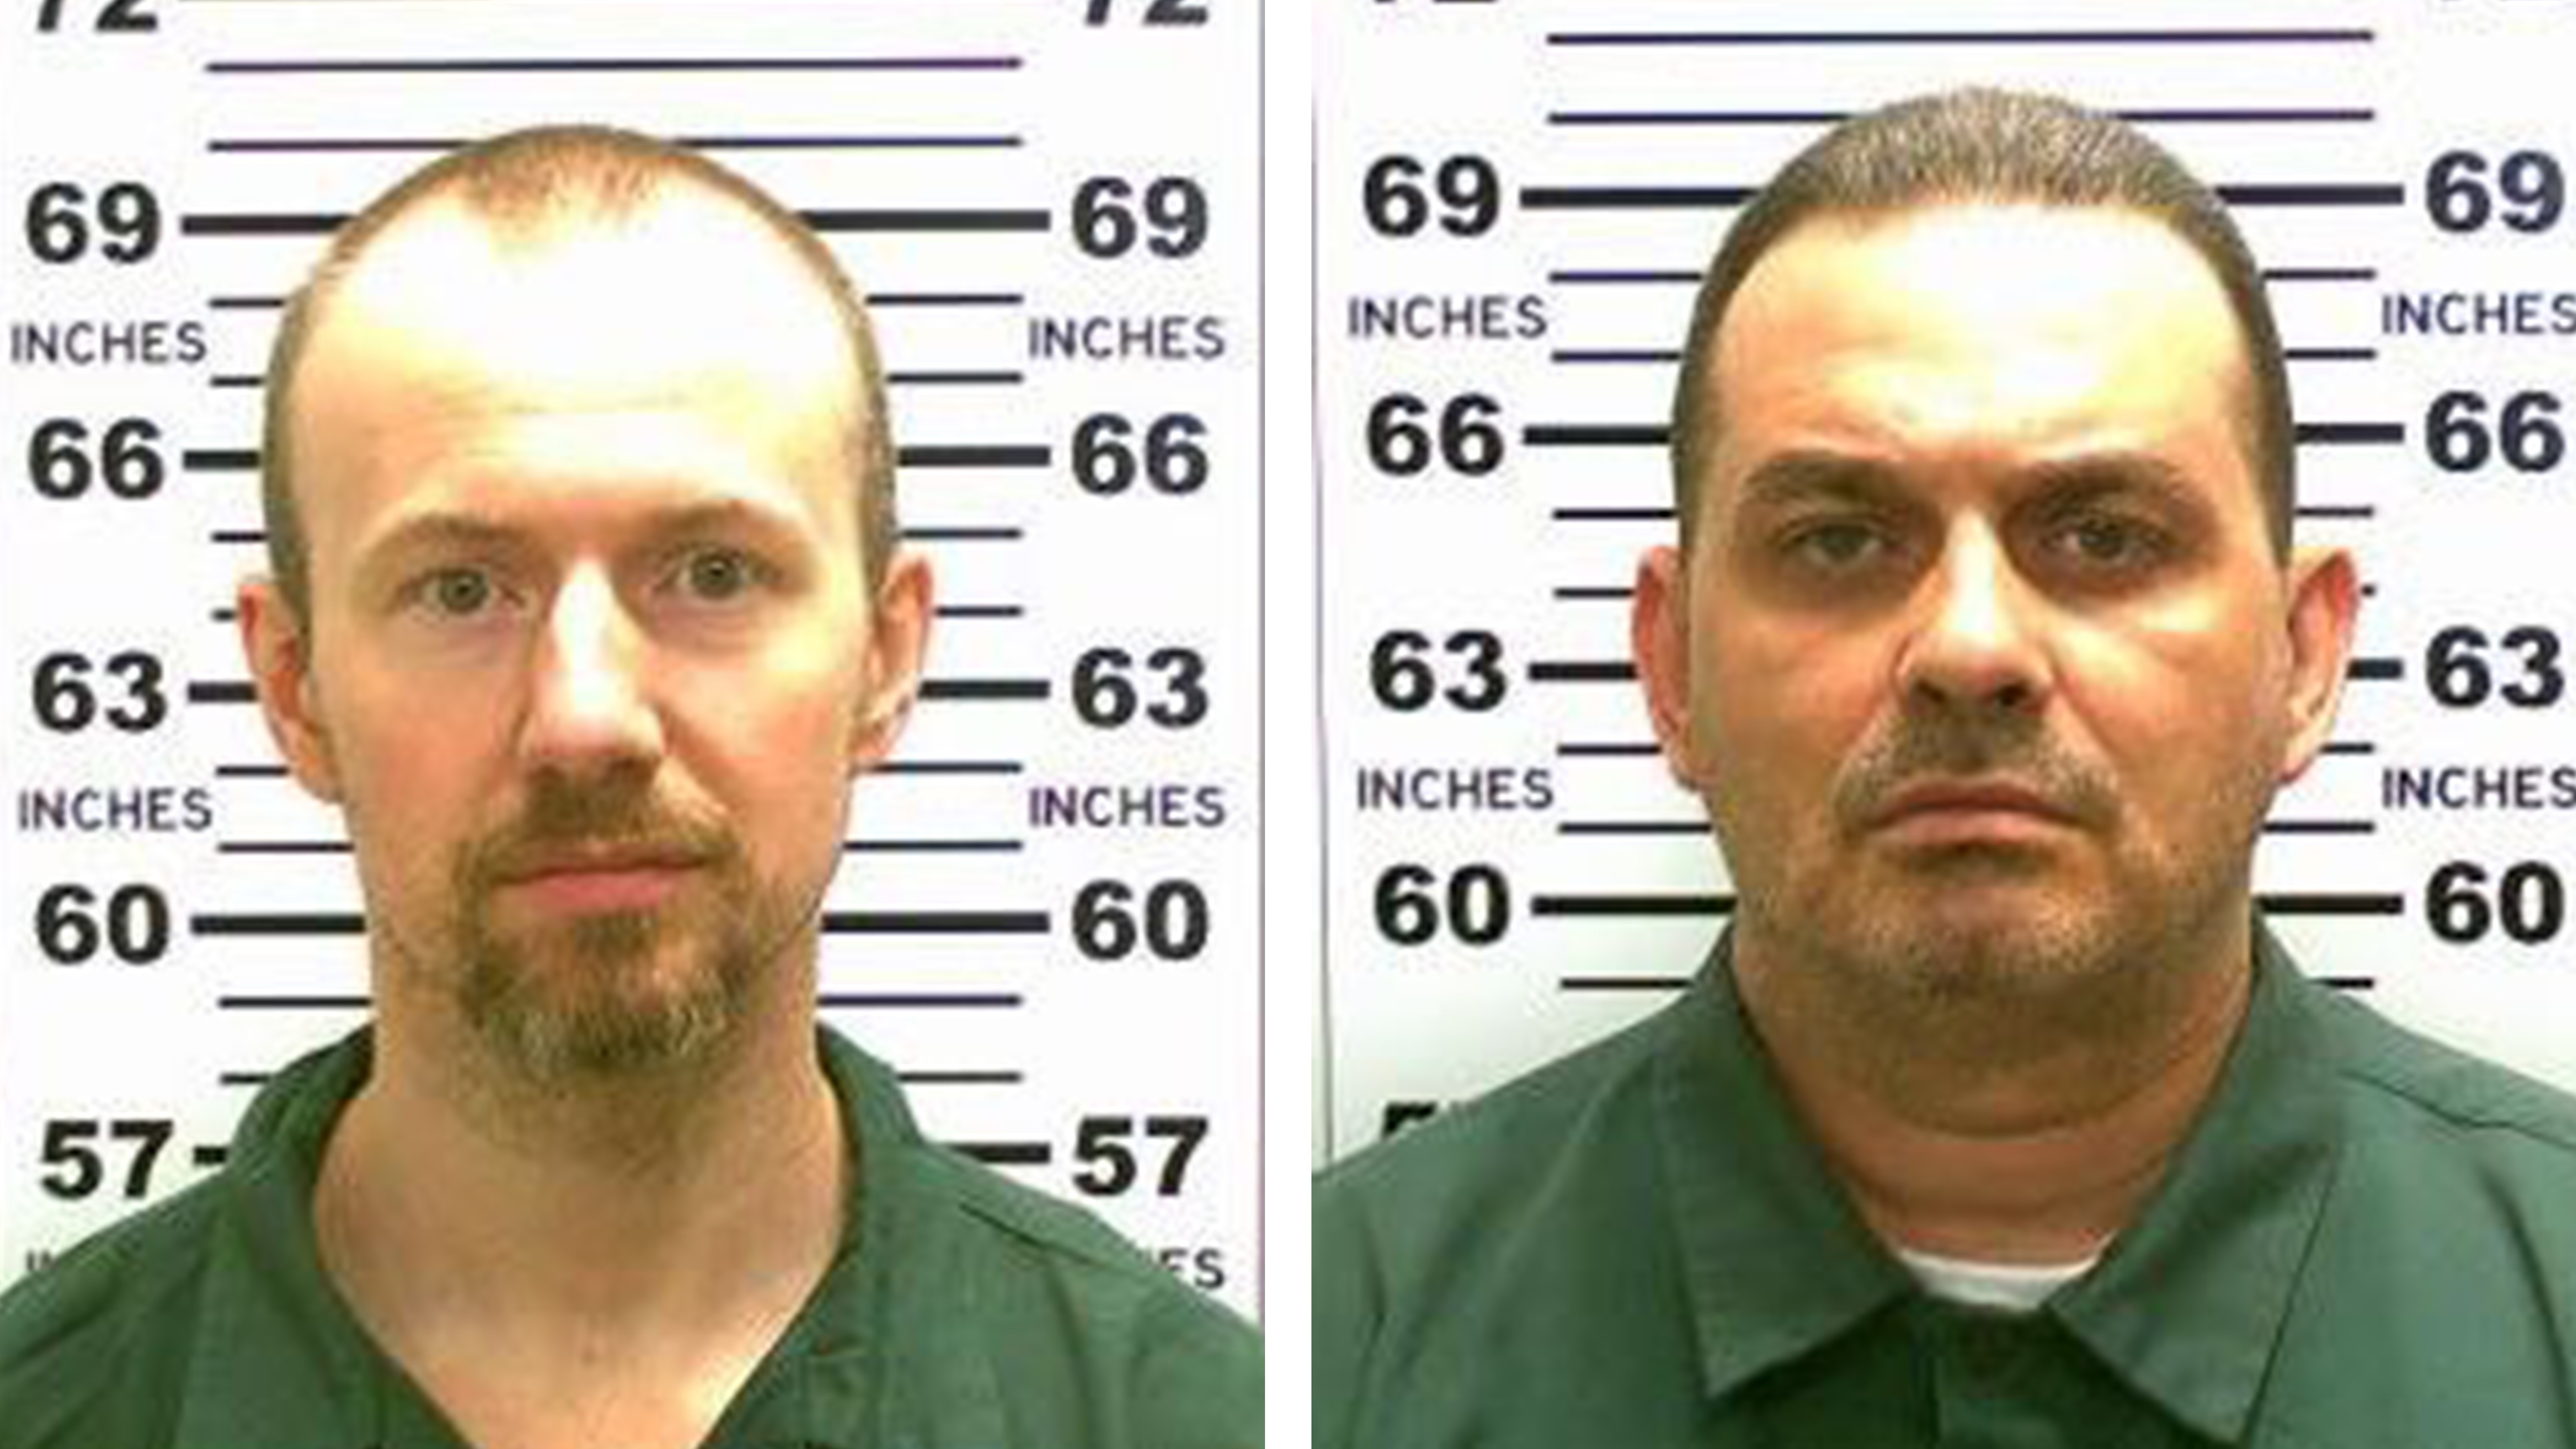 New York Prison Worker Arrested for Allegedly Helping Killers Escape